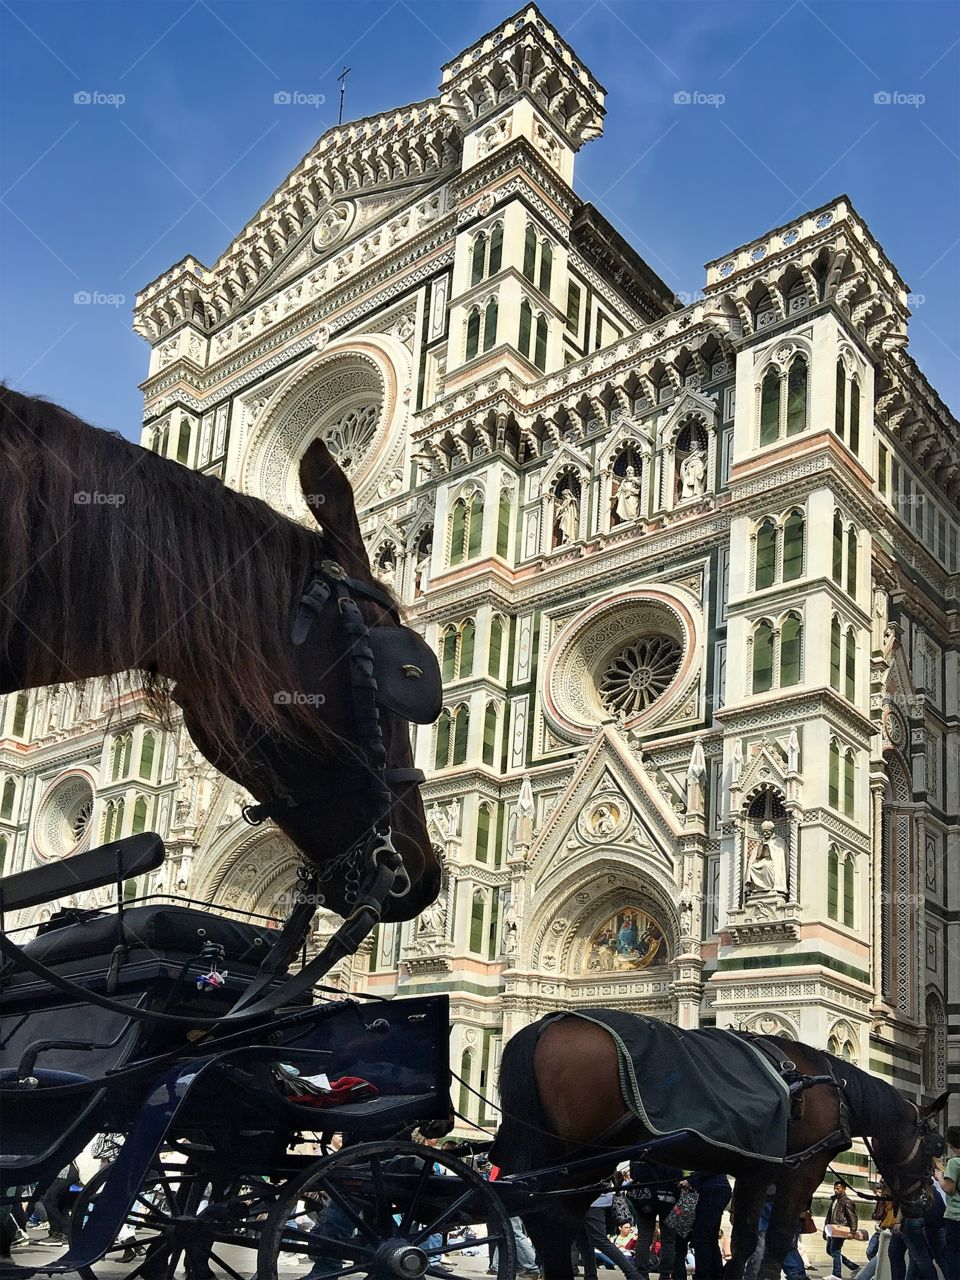 The Duomo of Florence with horse drawn carriages in front